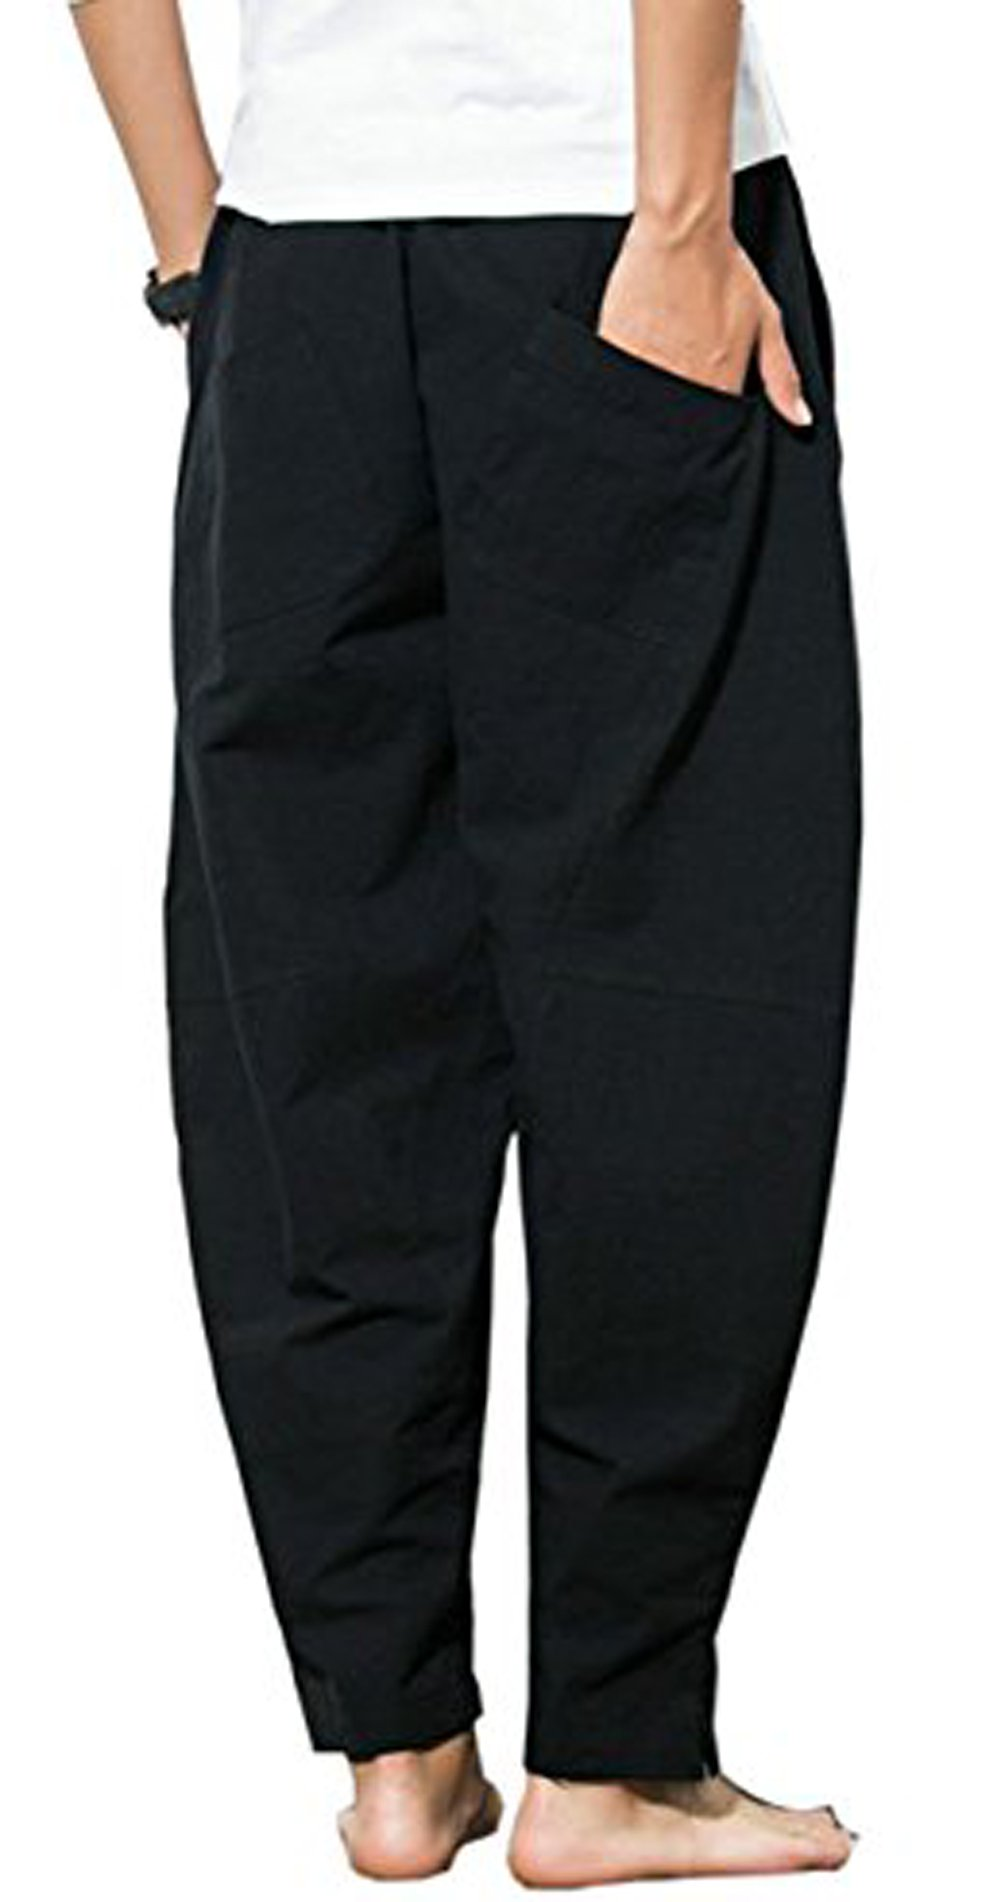 Thrivqyaf Men's Summer Casual Baggy Drawstring Cotton Beach Harem Pants Trousers (US M = Asian 2XL Waist:33''-34'', Black) by Thrivqyaf (Image #3)